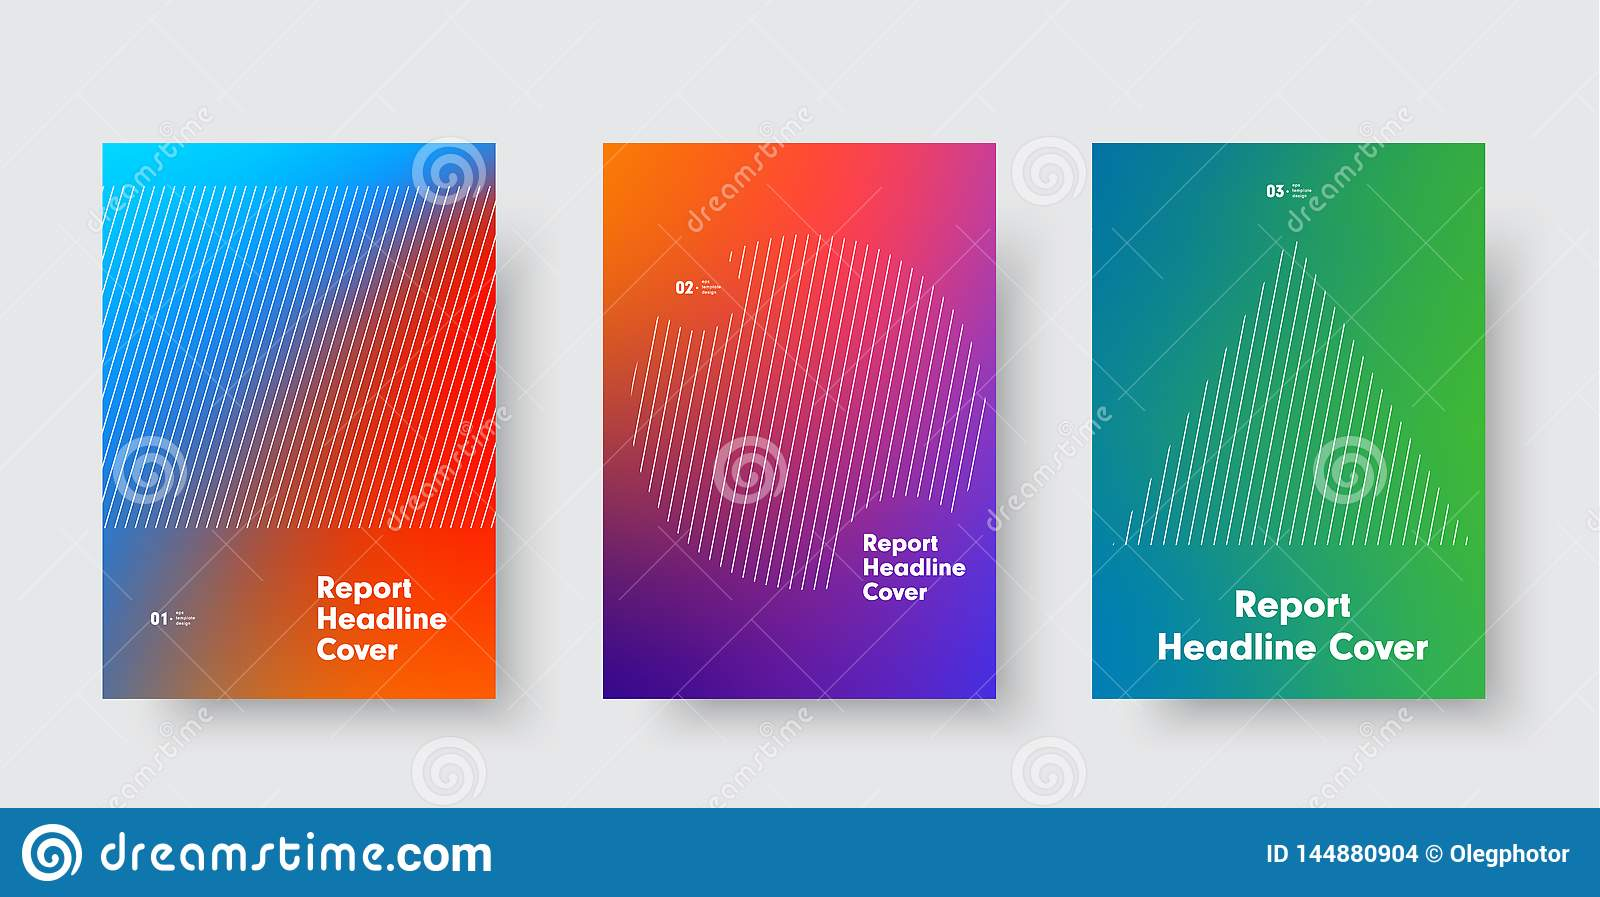 Templates for minimalistic vector cover with a gradient on the background and a circle, a triangle and a rectangle of diagonal